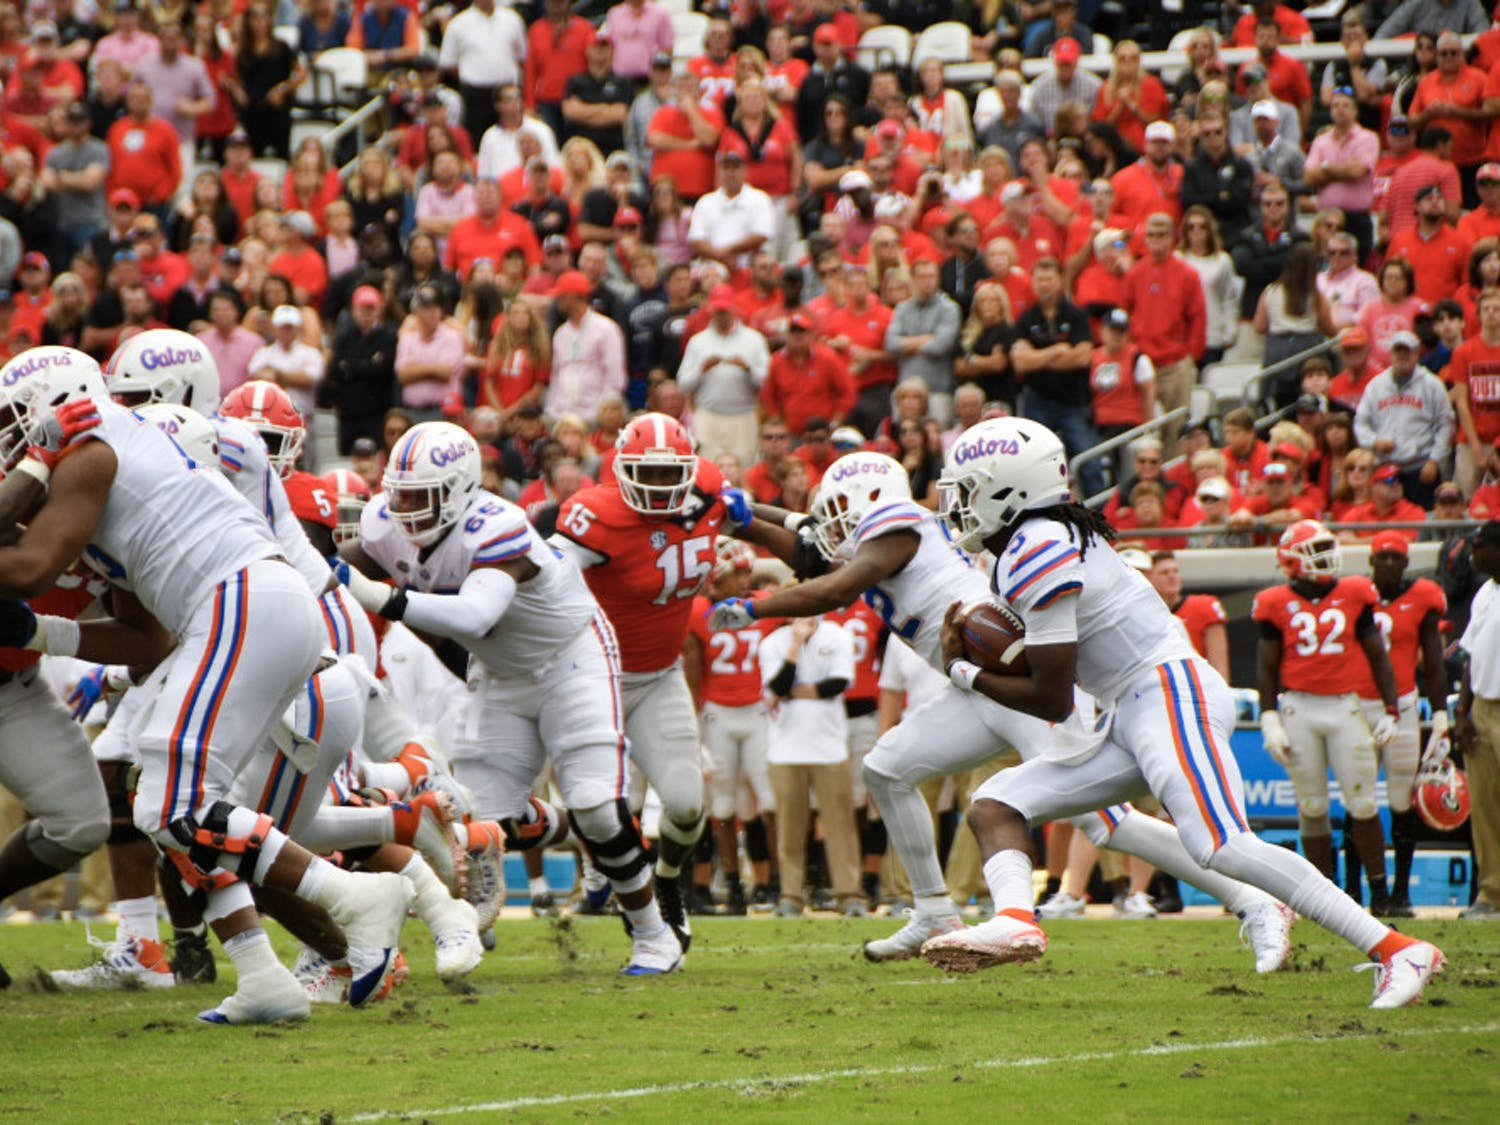 Quarterback Emory Jones (right) has only two games of leeway remaining on his freshman redshirt.